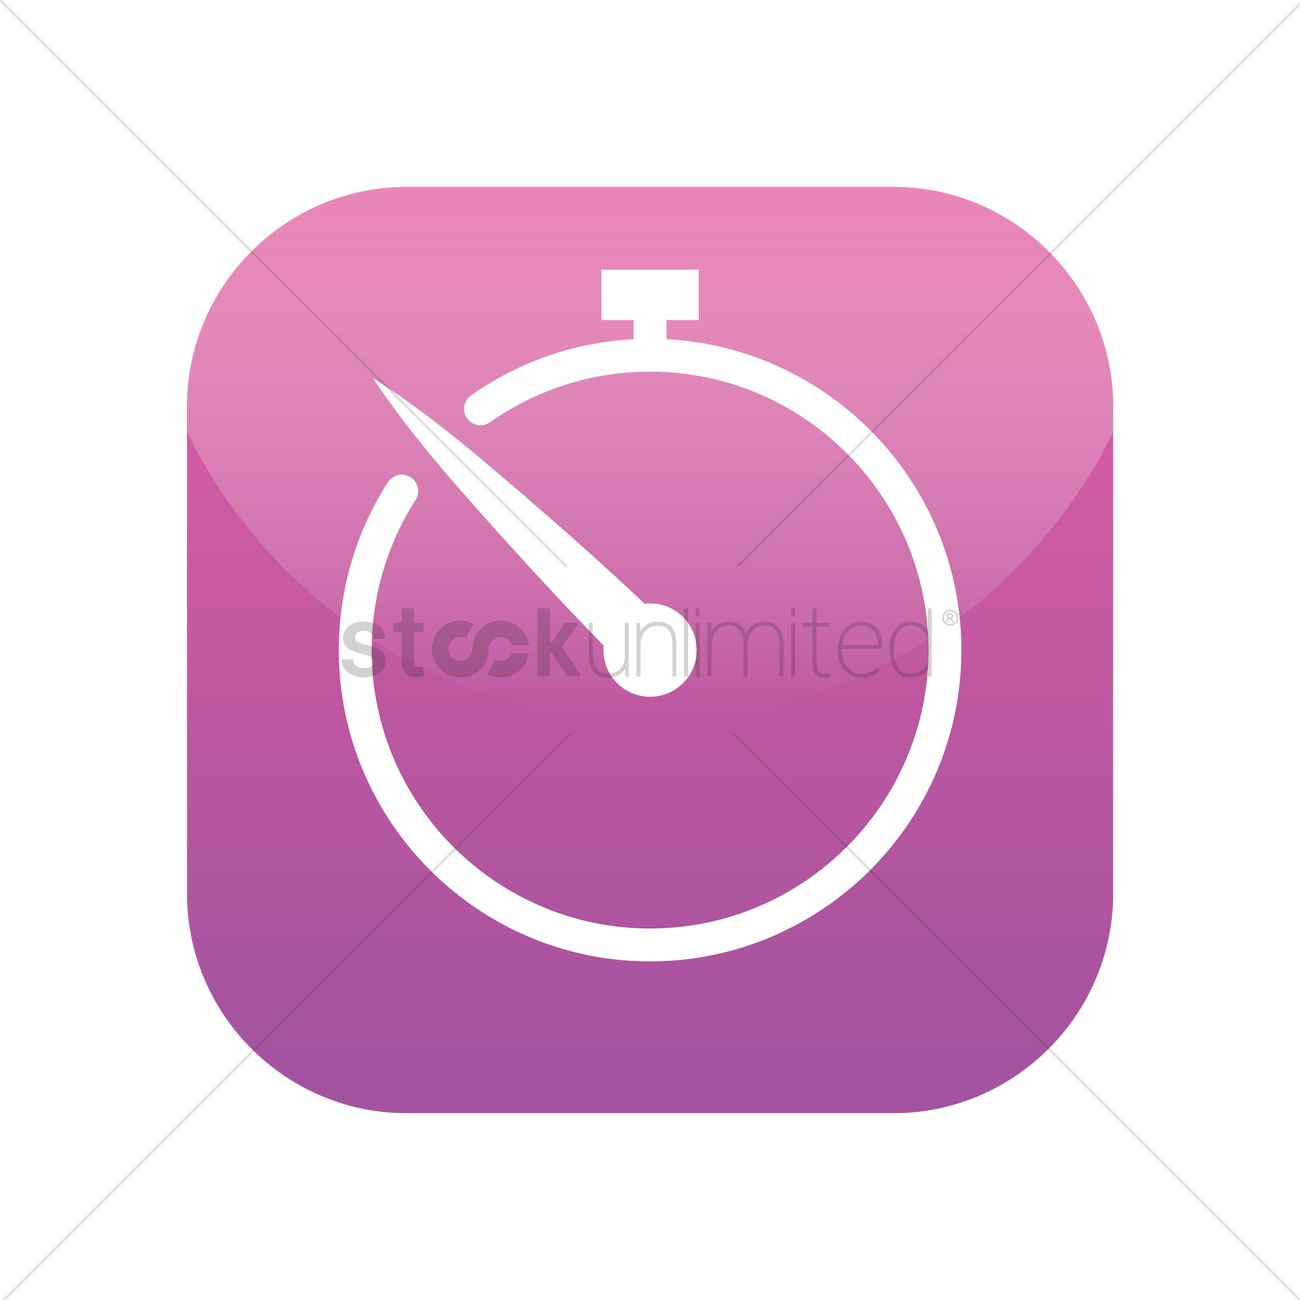 Timer icon Vector Image - 1945490 | StockUnlimited